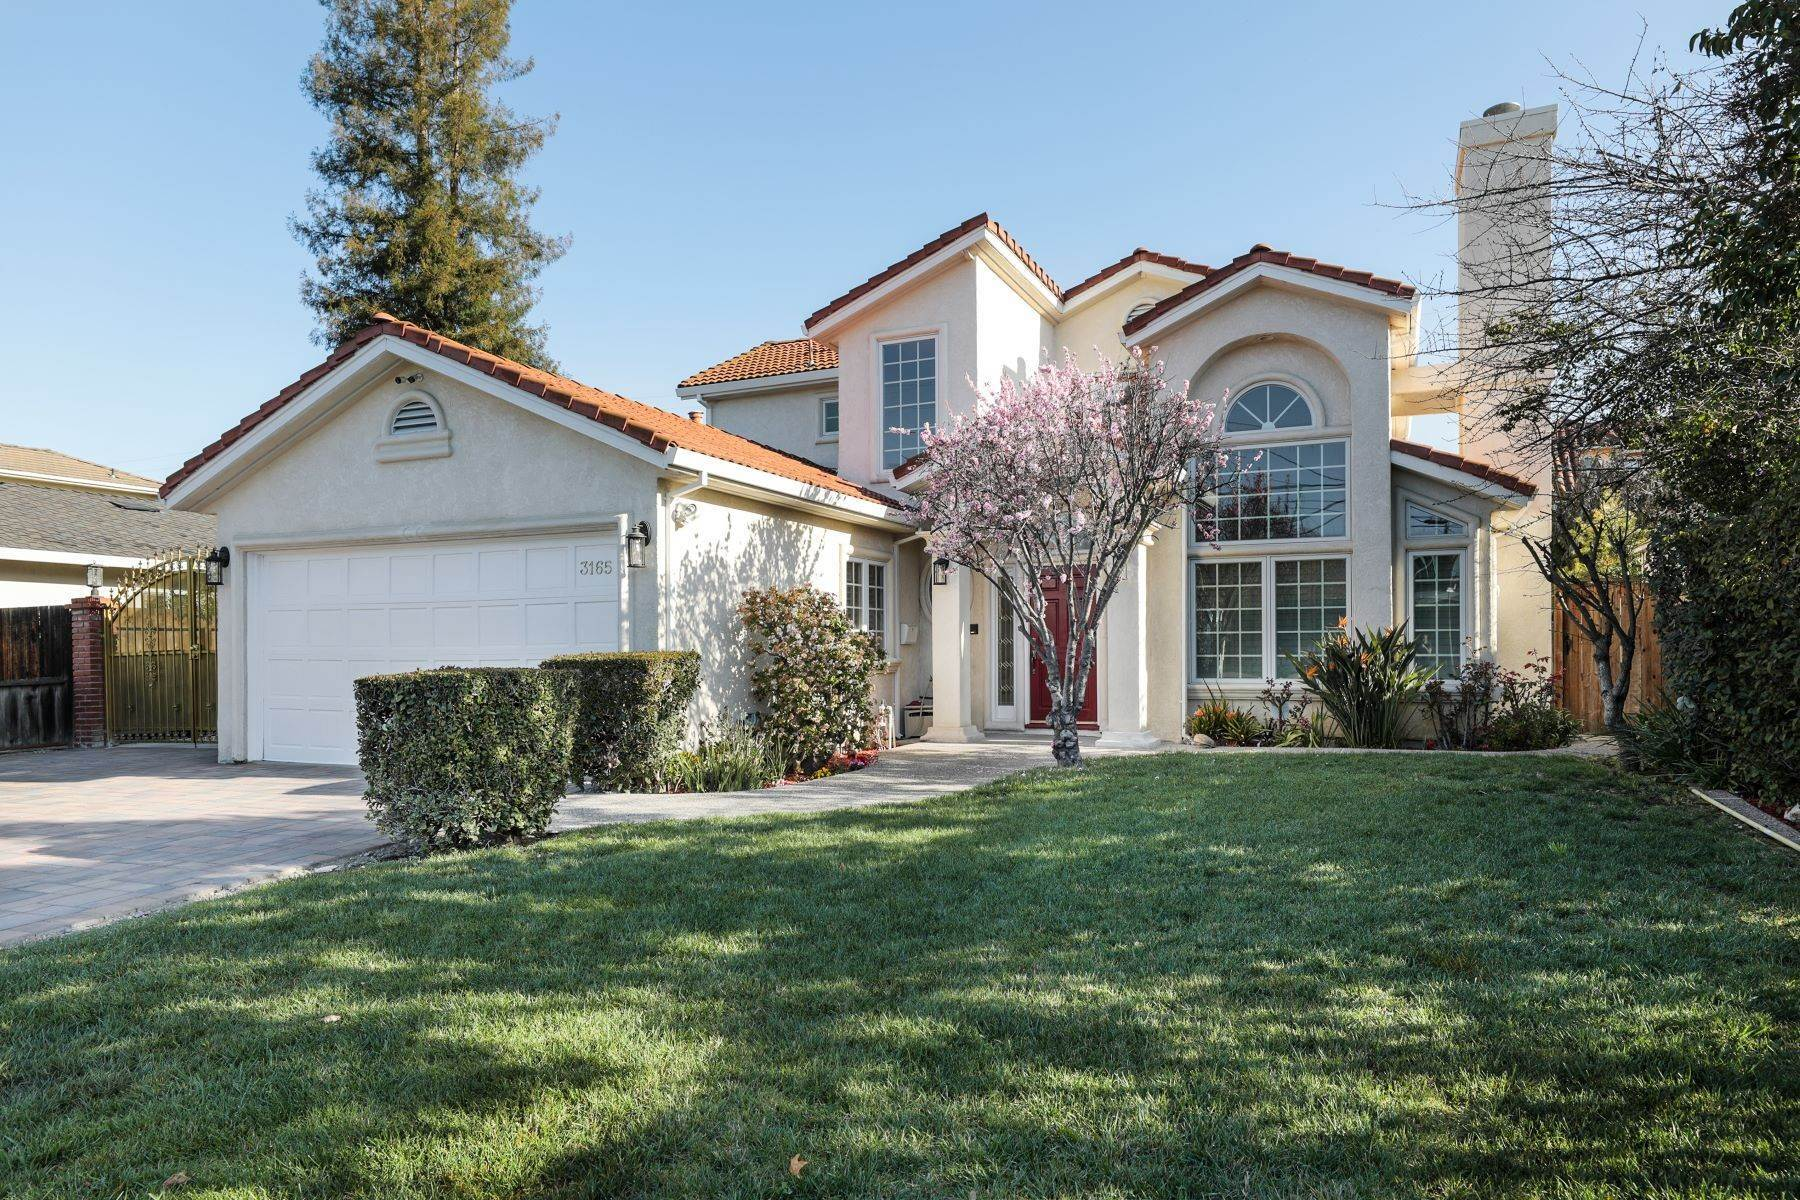 Single Family Homes for Sale at Desirable Midtown Mediterranean 3165 Louis Road Palo Alto, California 94303 United States